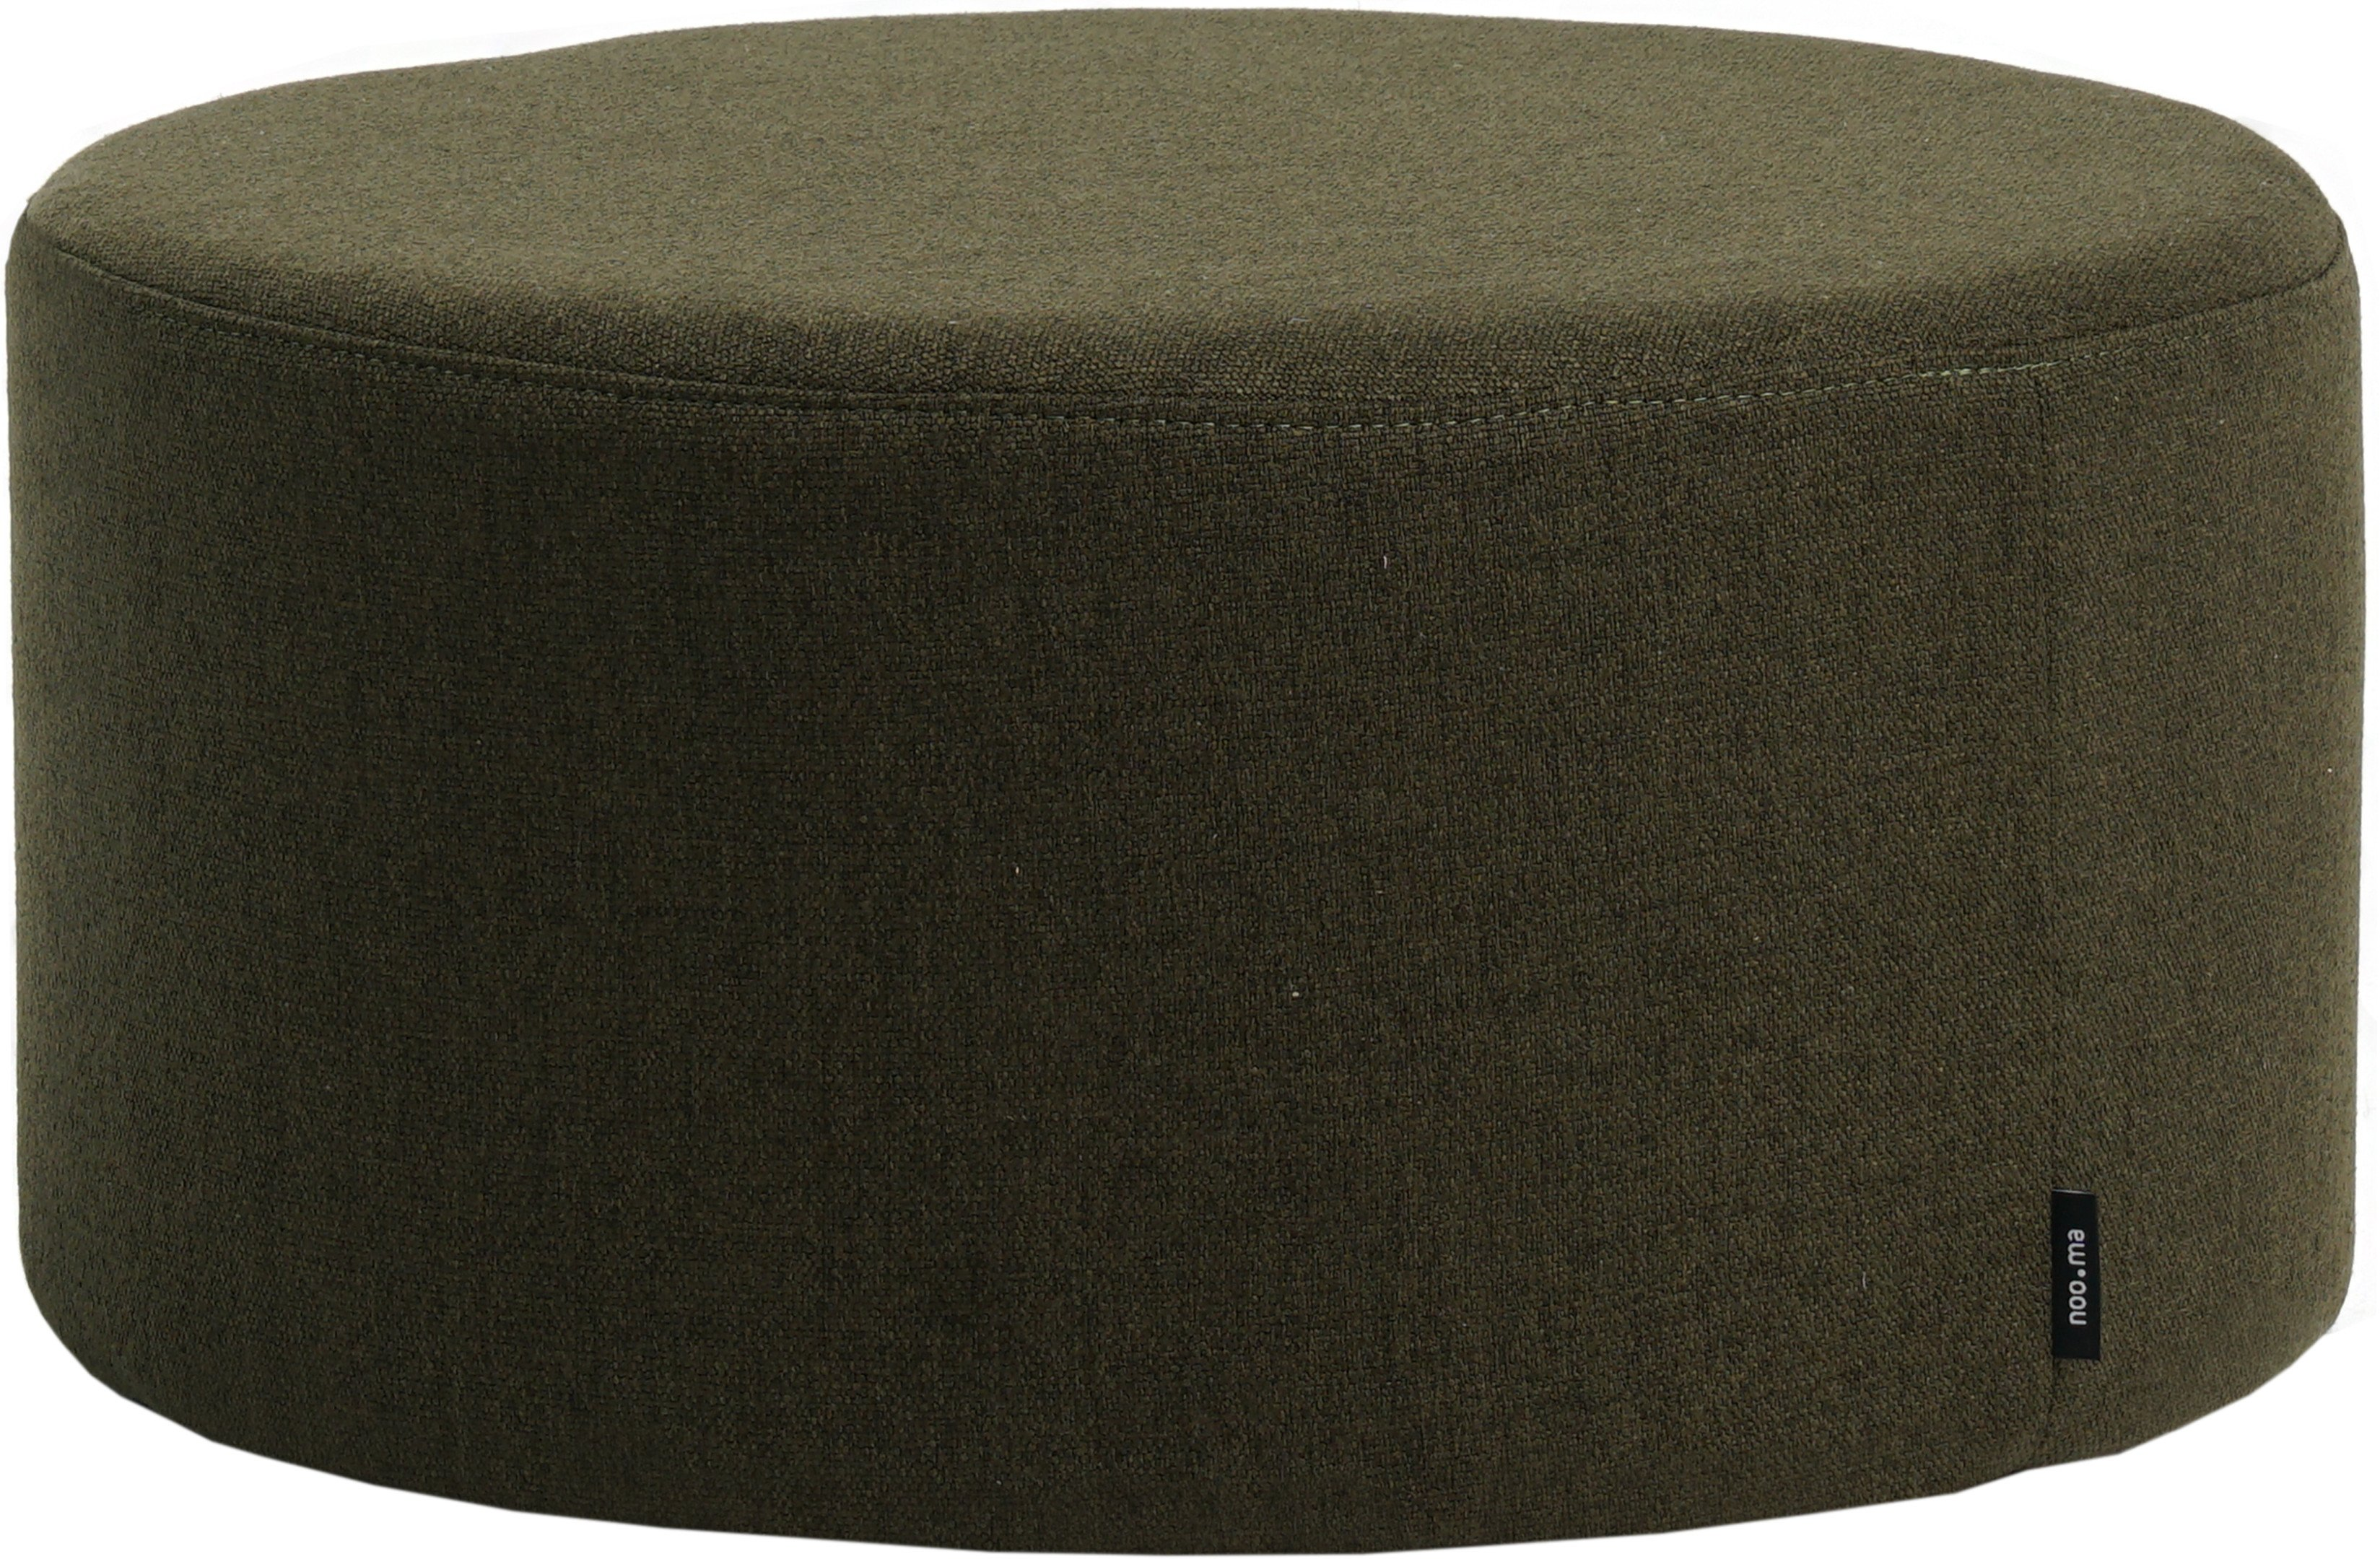 Folk Pouf Dark Green Low, noo.ma